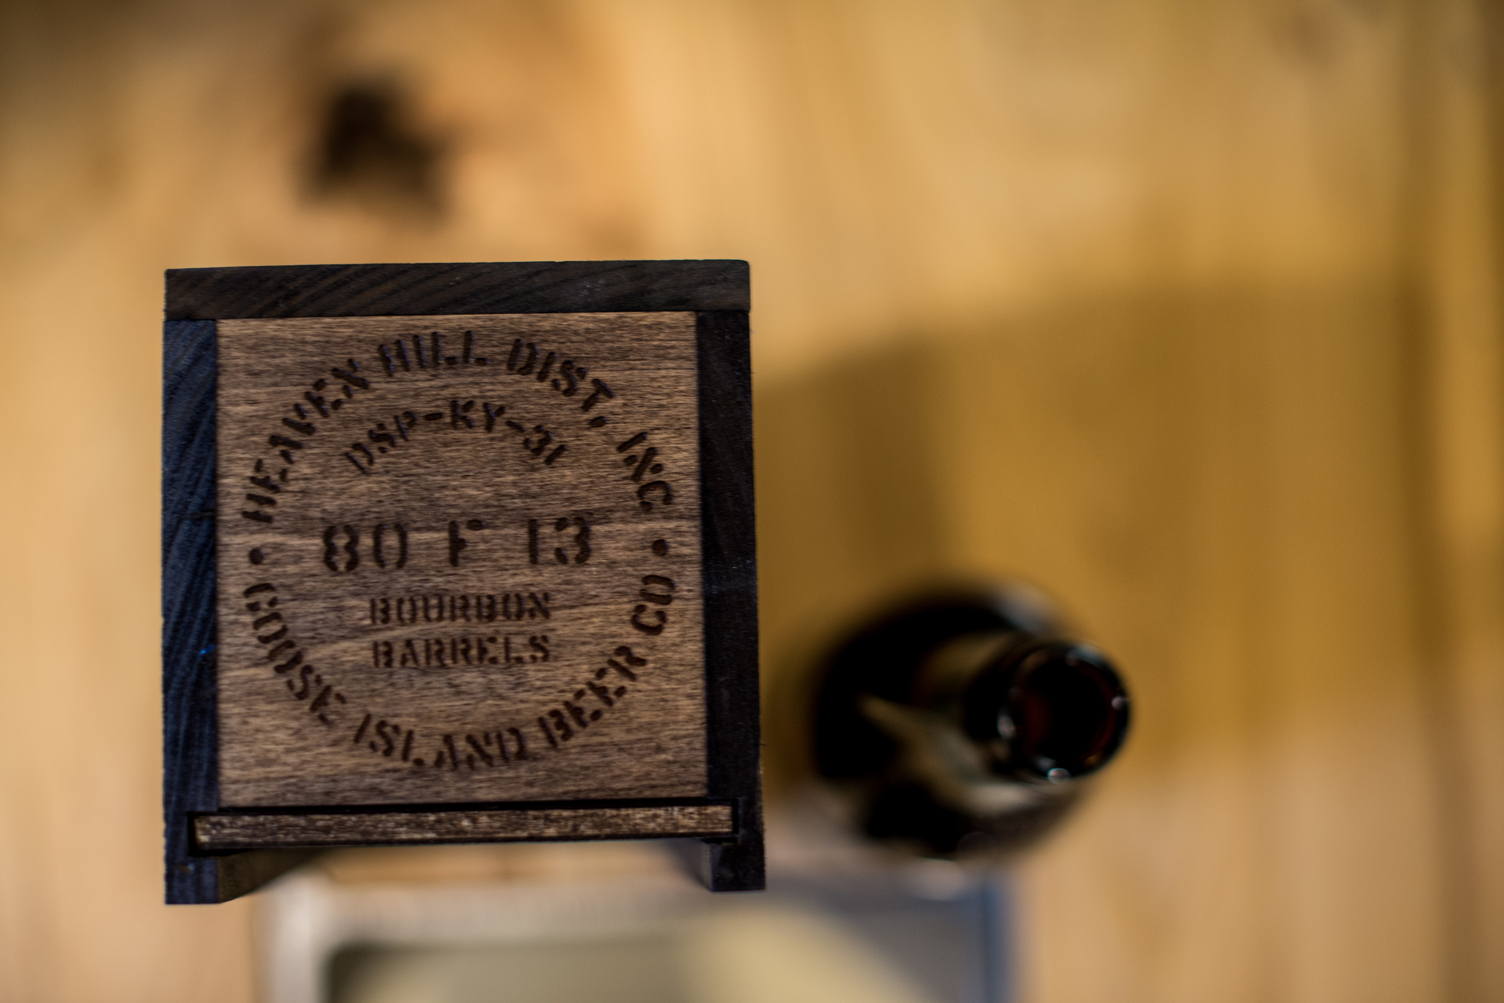 The top of the Rare box looks like the Heaven Hill barrels. Photo credit: Eric Dirksen.